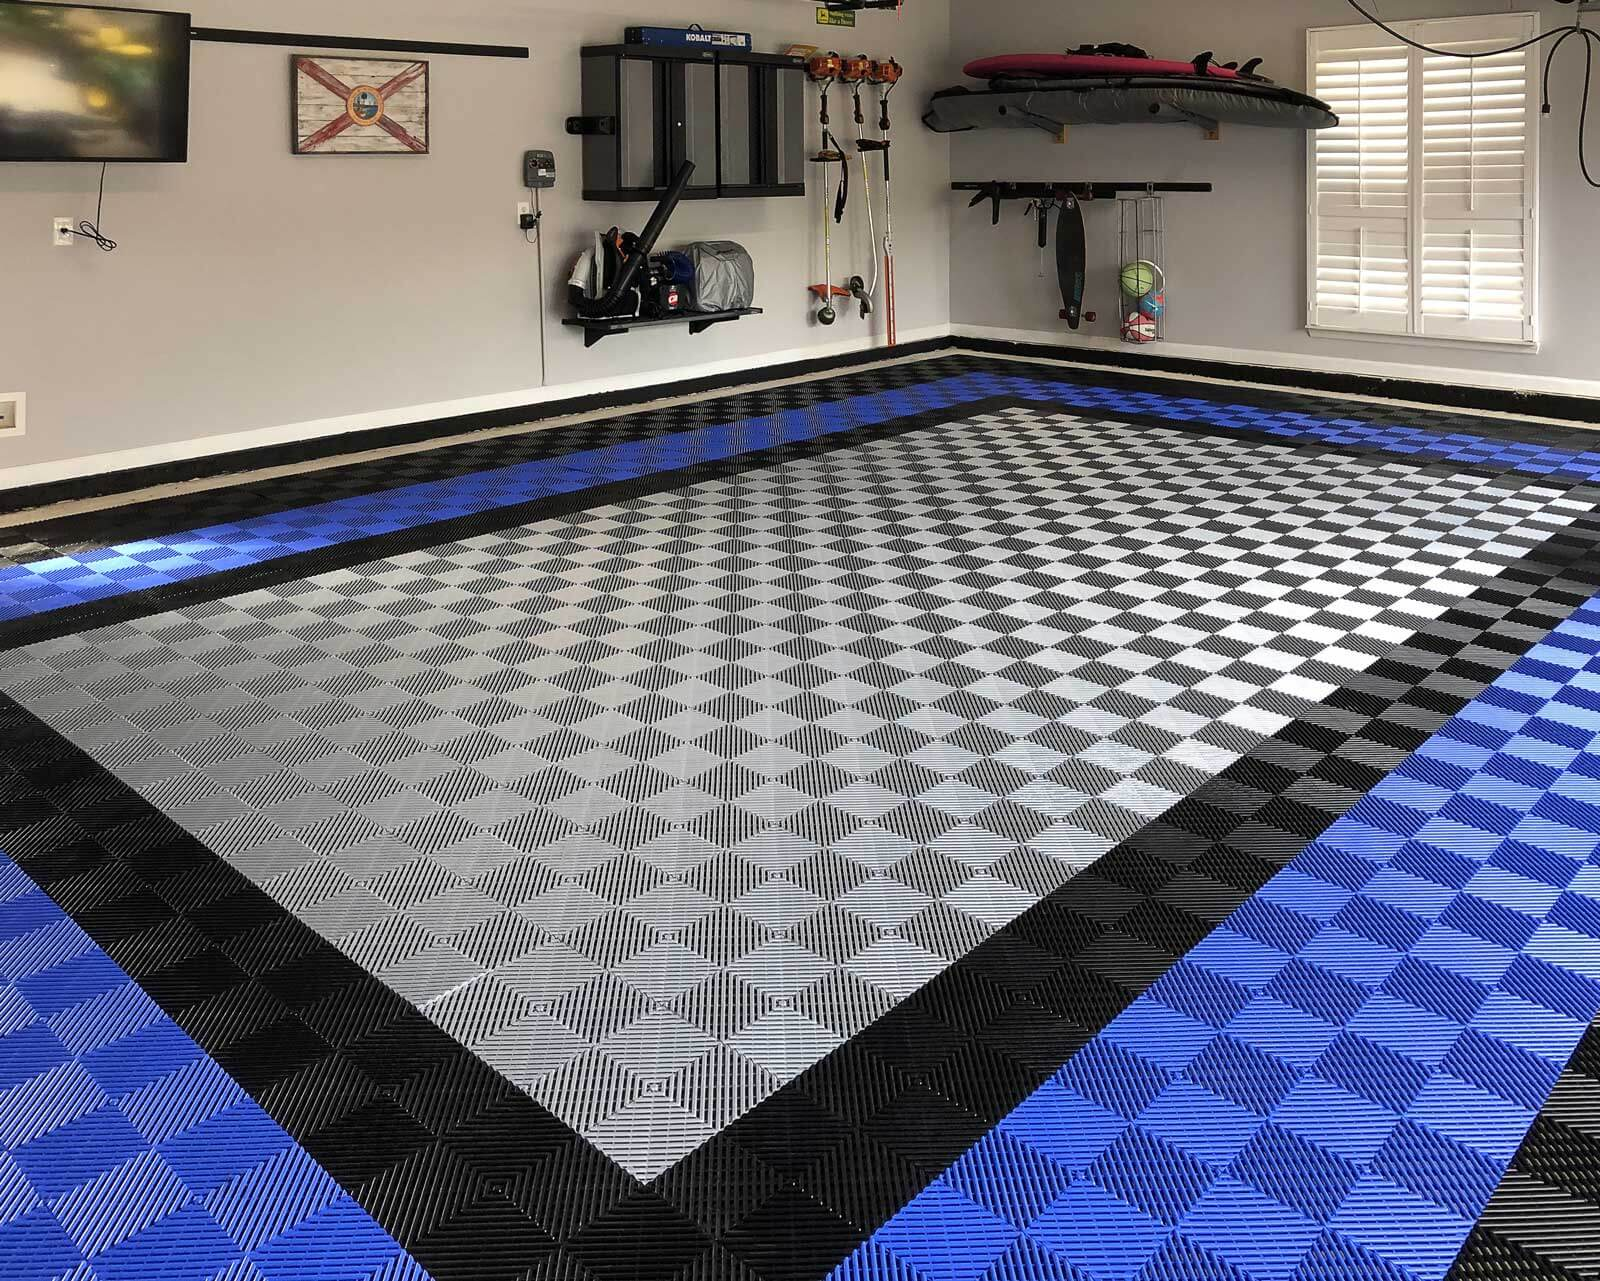 Garage floor tiles in Free-Flow black, royal blue and alloy